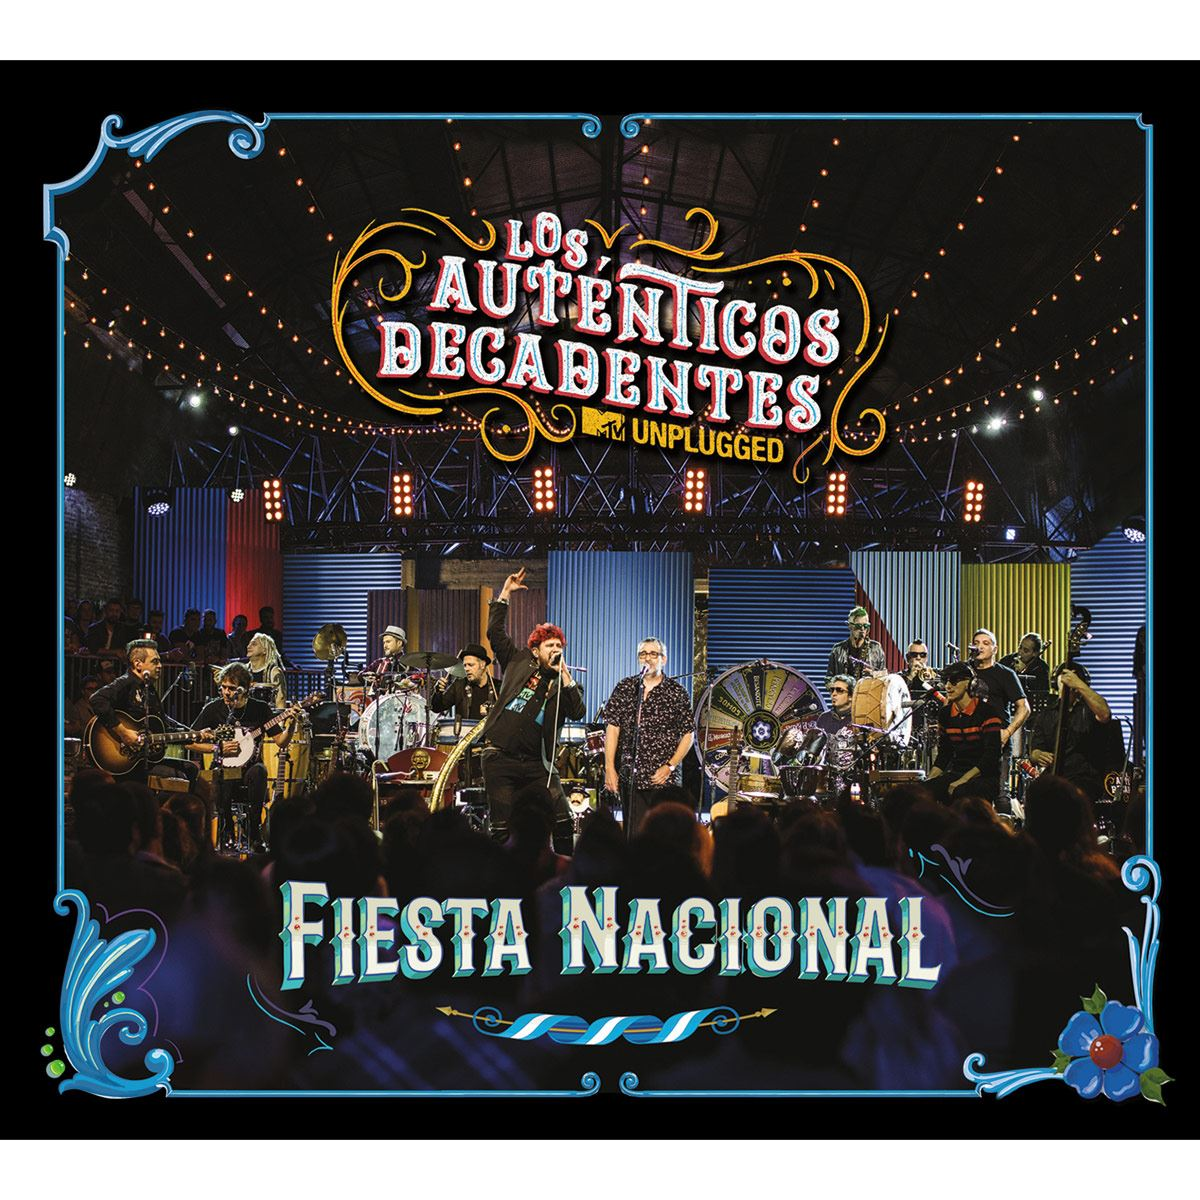 CD/DVD Los Auténticos Decadentes Unplugged